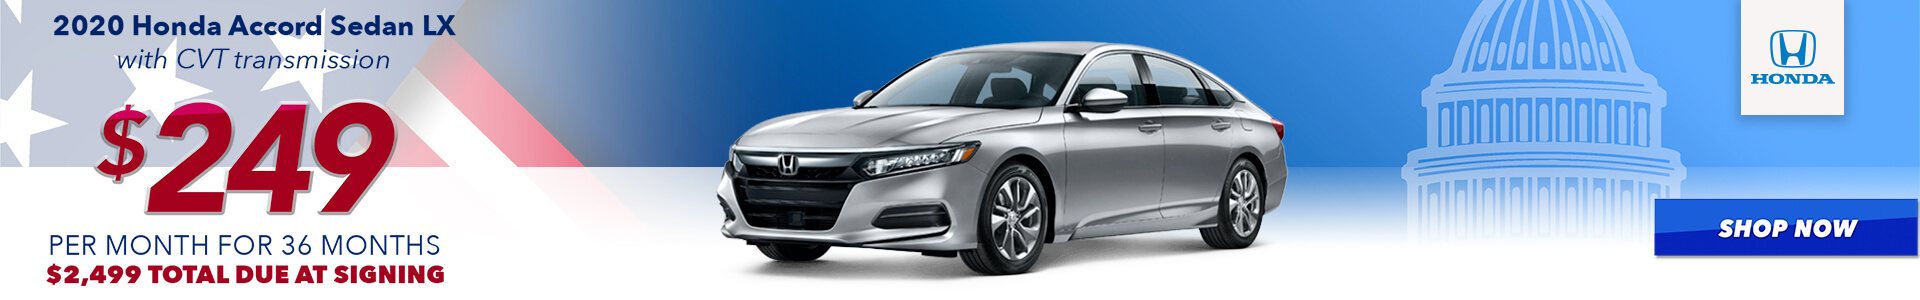 2020 Accord - Lease for $249